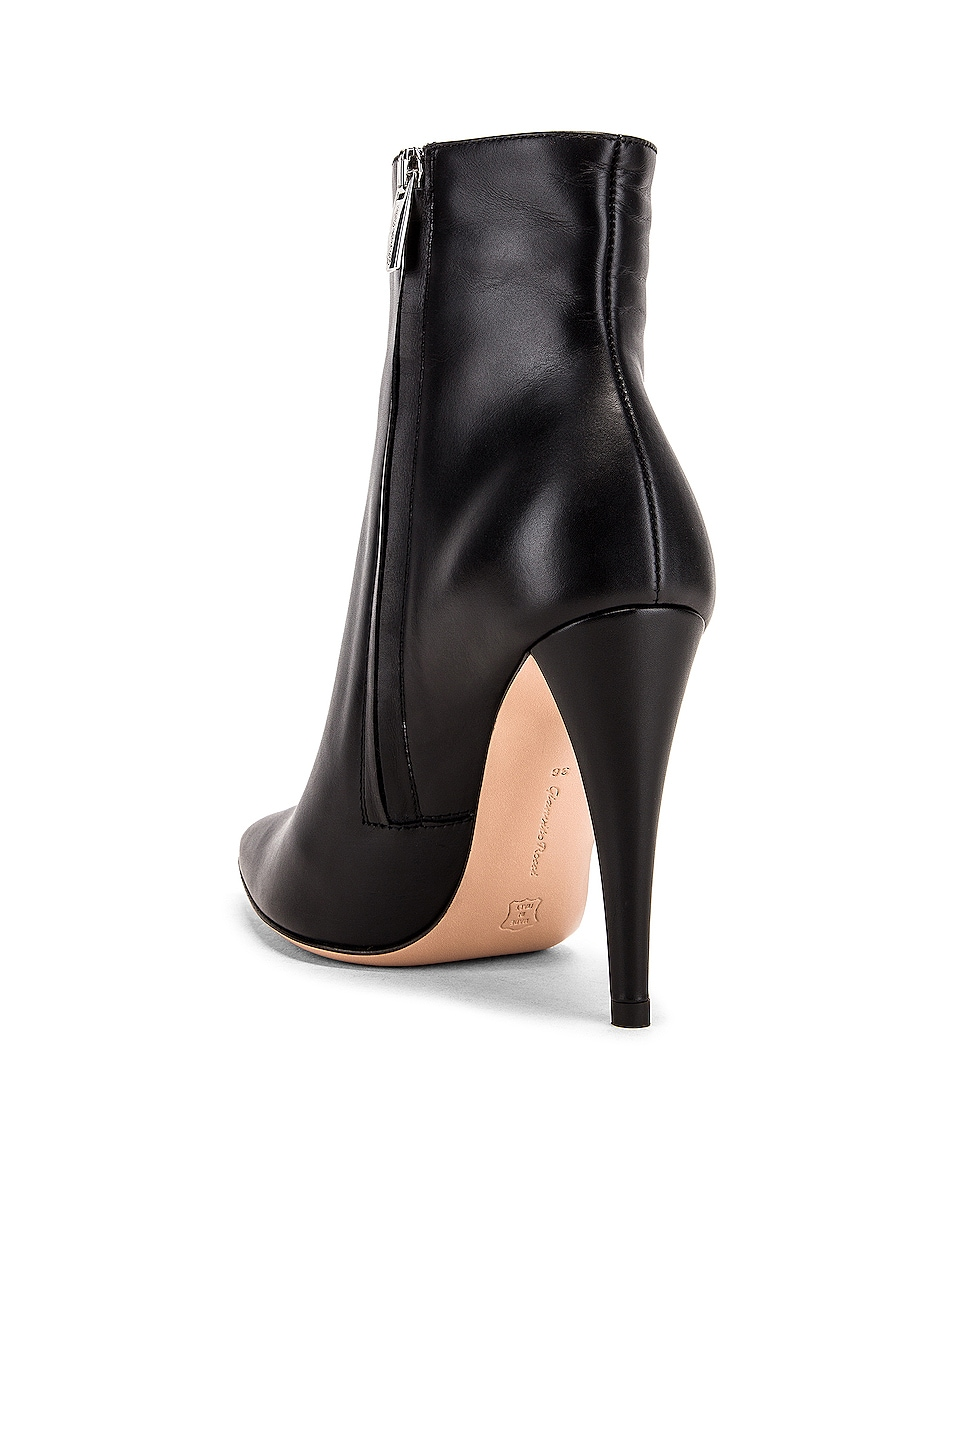 Image 3 of Gianvito Rossi Scarlet Ankle Heel Booties in Black